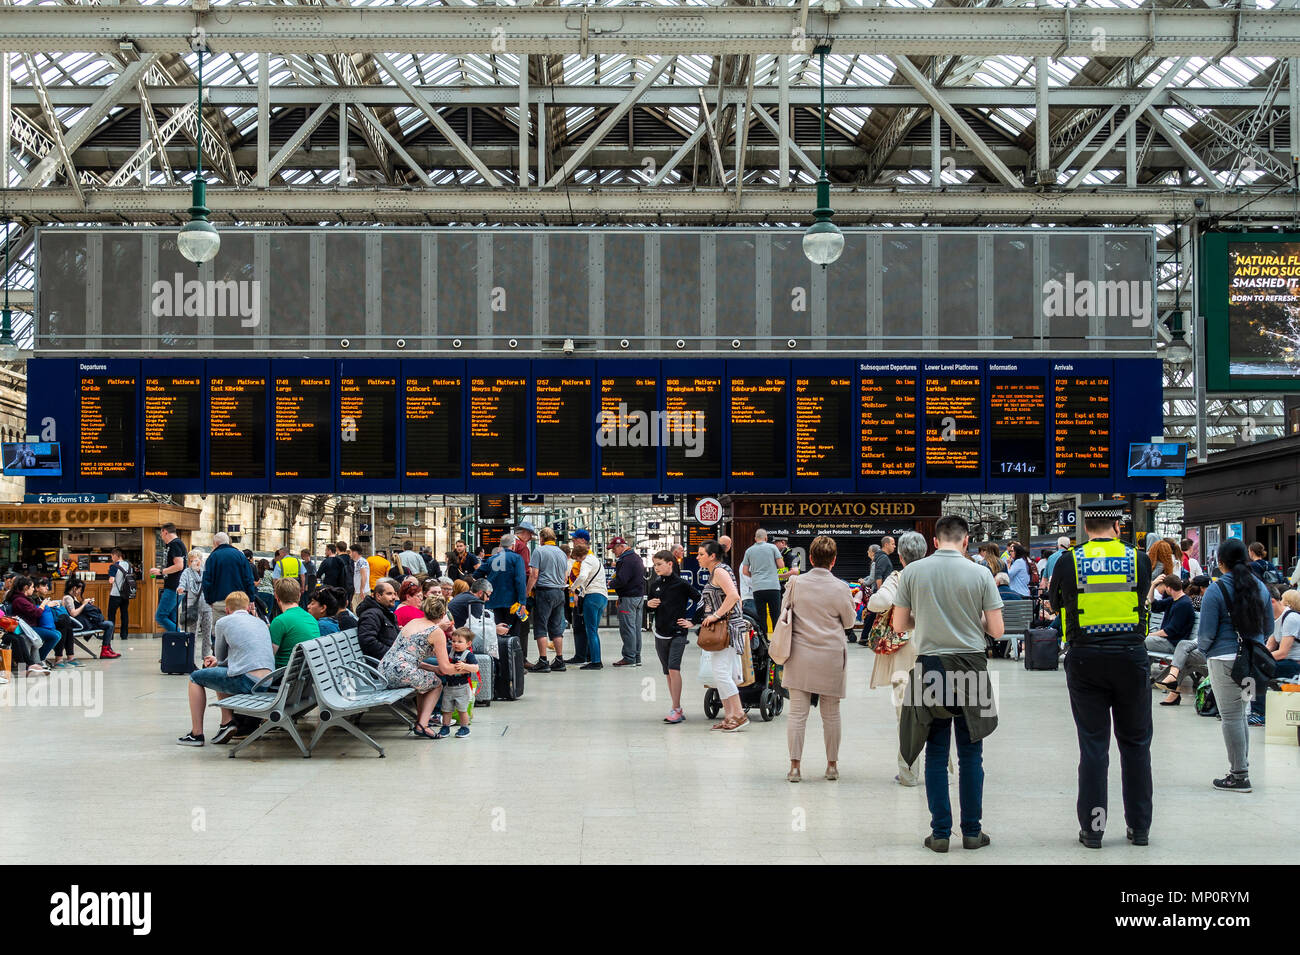 Passengers waiting for trains in front of the main Departures Board in the concourse of Glasgow Central Station, Glasgow, Scotland, UK - Stock Image